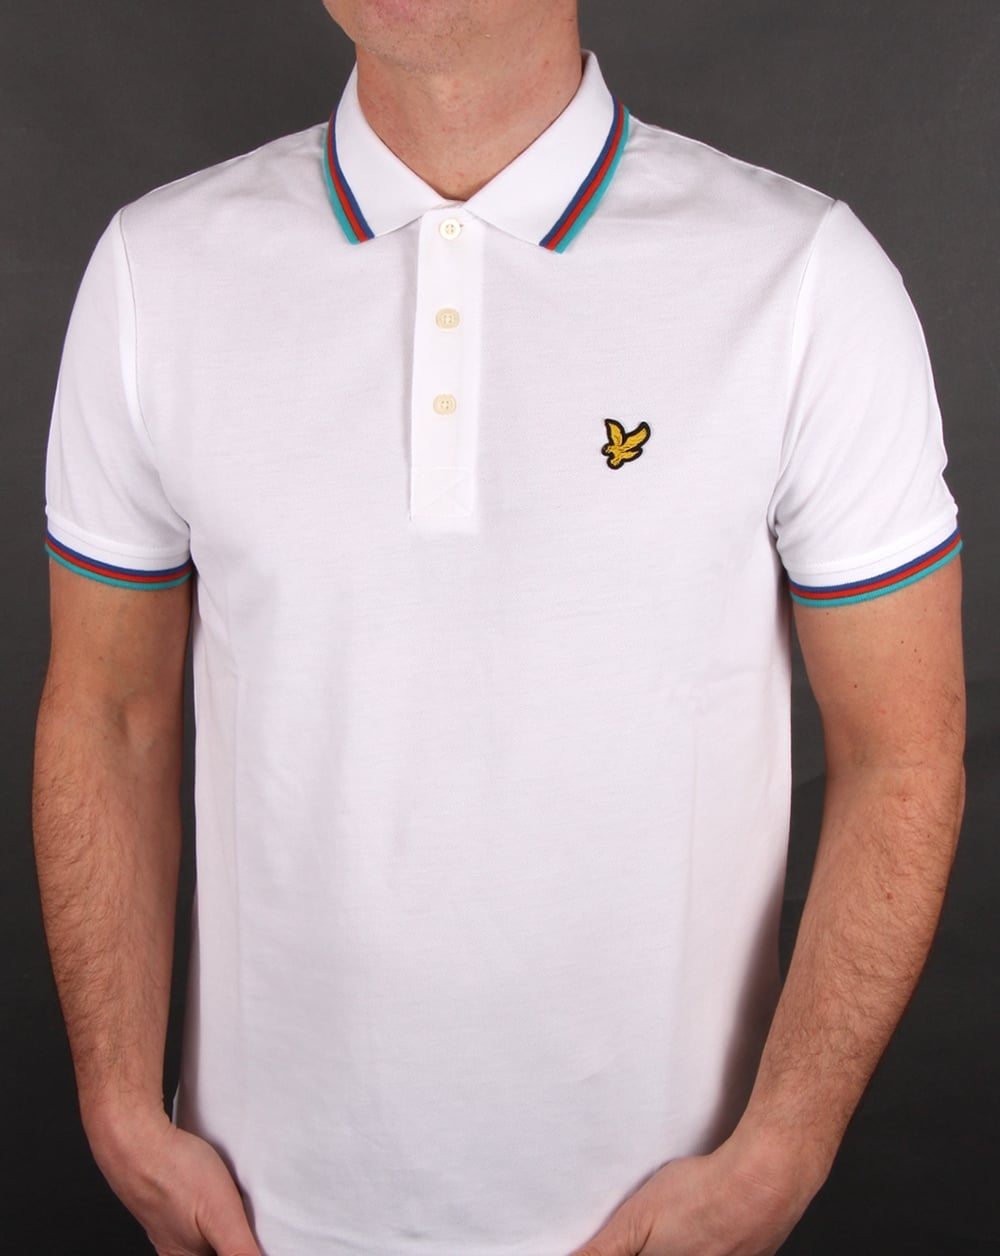 lyle and scott tipped polo shirt white men 39 s pique cotton top. Black Bedroom Furniture Sets. Home Design Ideas